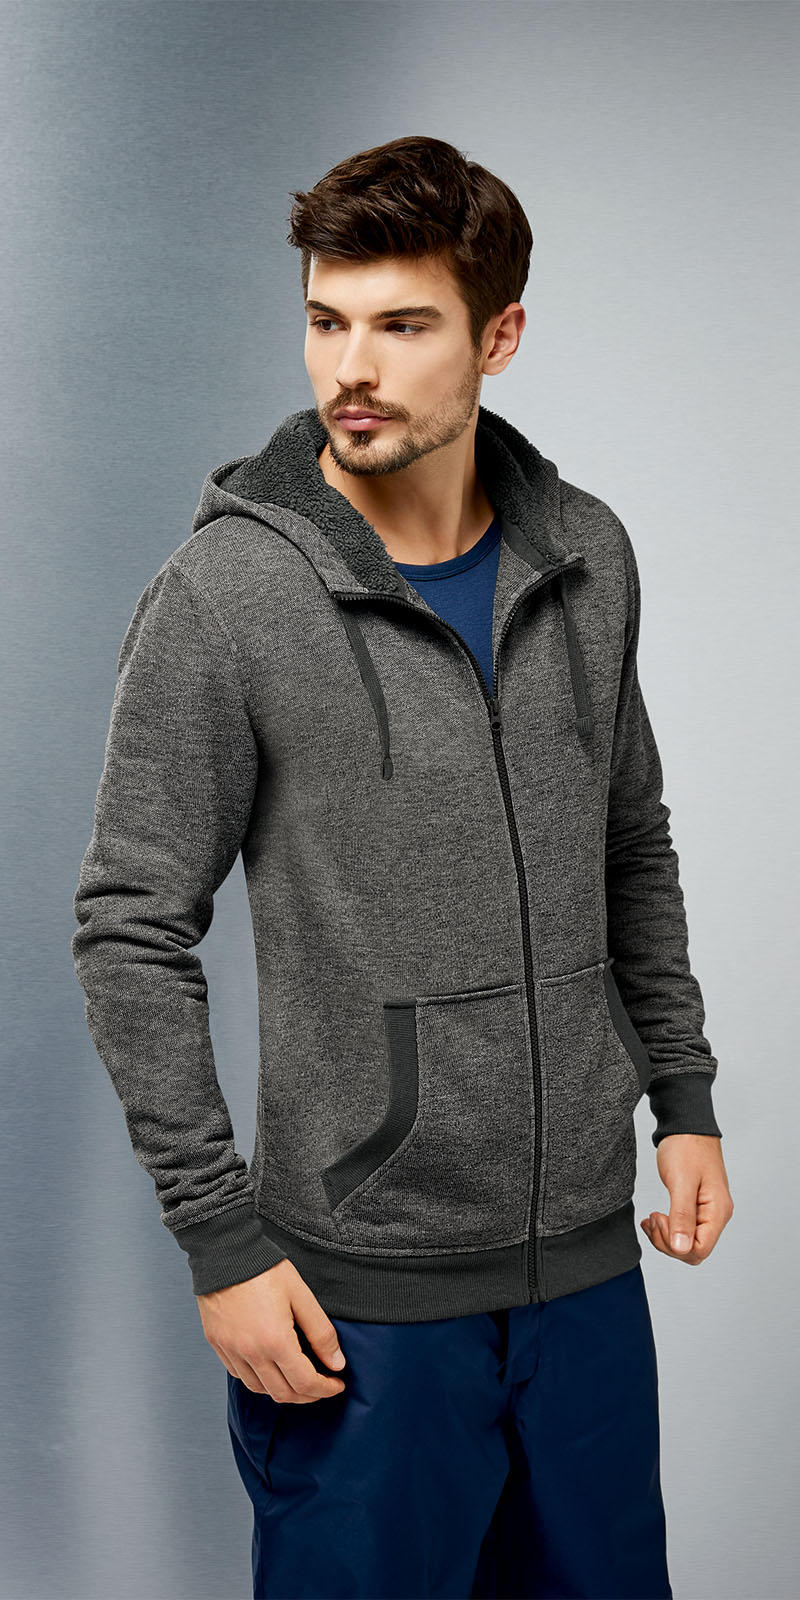 herren sweatjacke grau gr l ean193 jacke eur 4 99. Black Bedroom Furniture Sets. Home Design Ideas